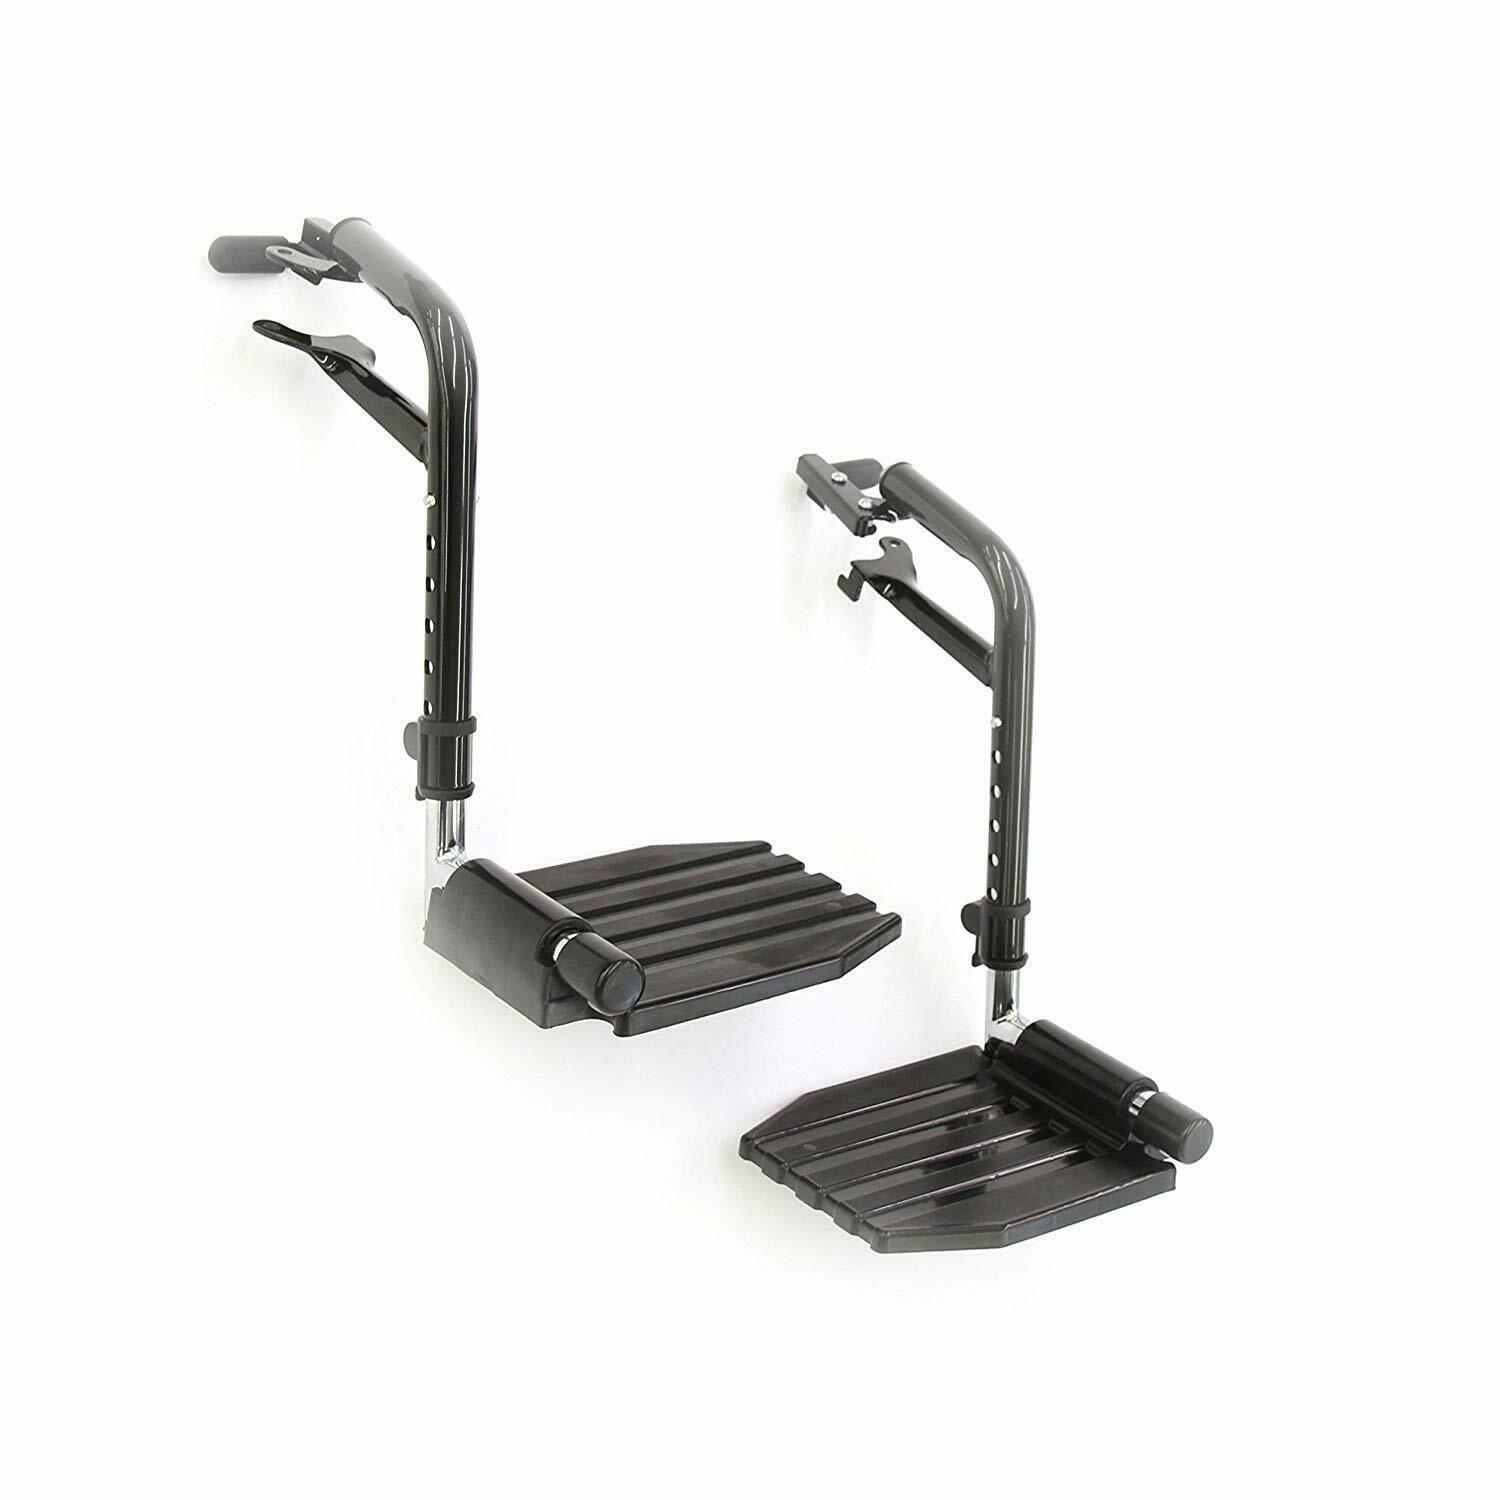 Primary image for Invacare T93HEP Economy Footrest for Standard Wheelchairs, Stylish, Durable